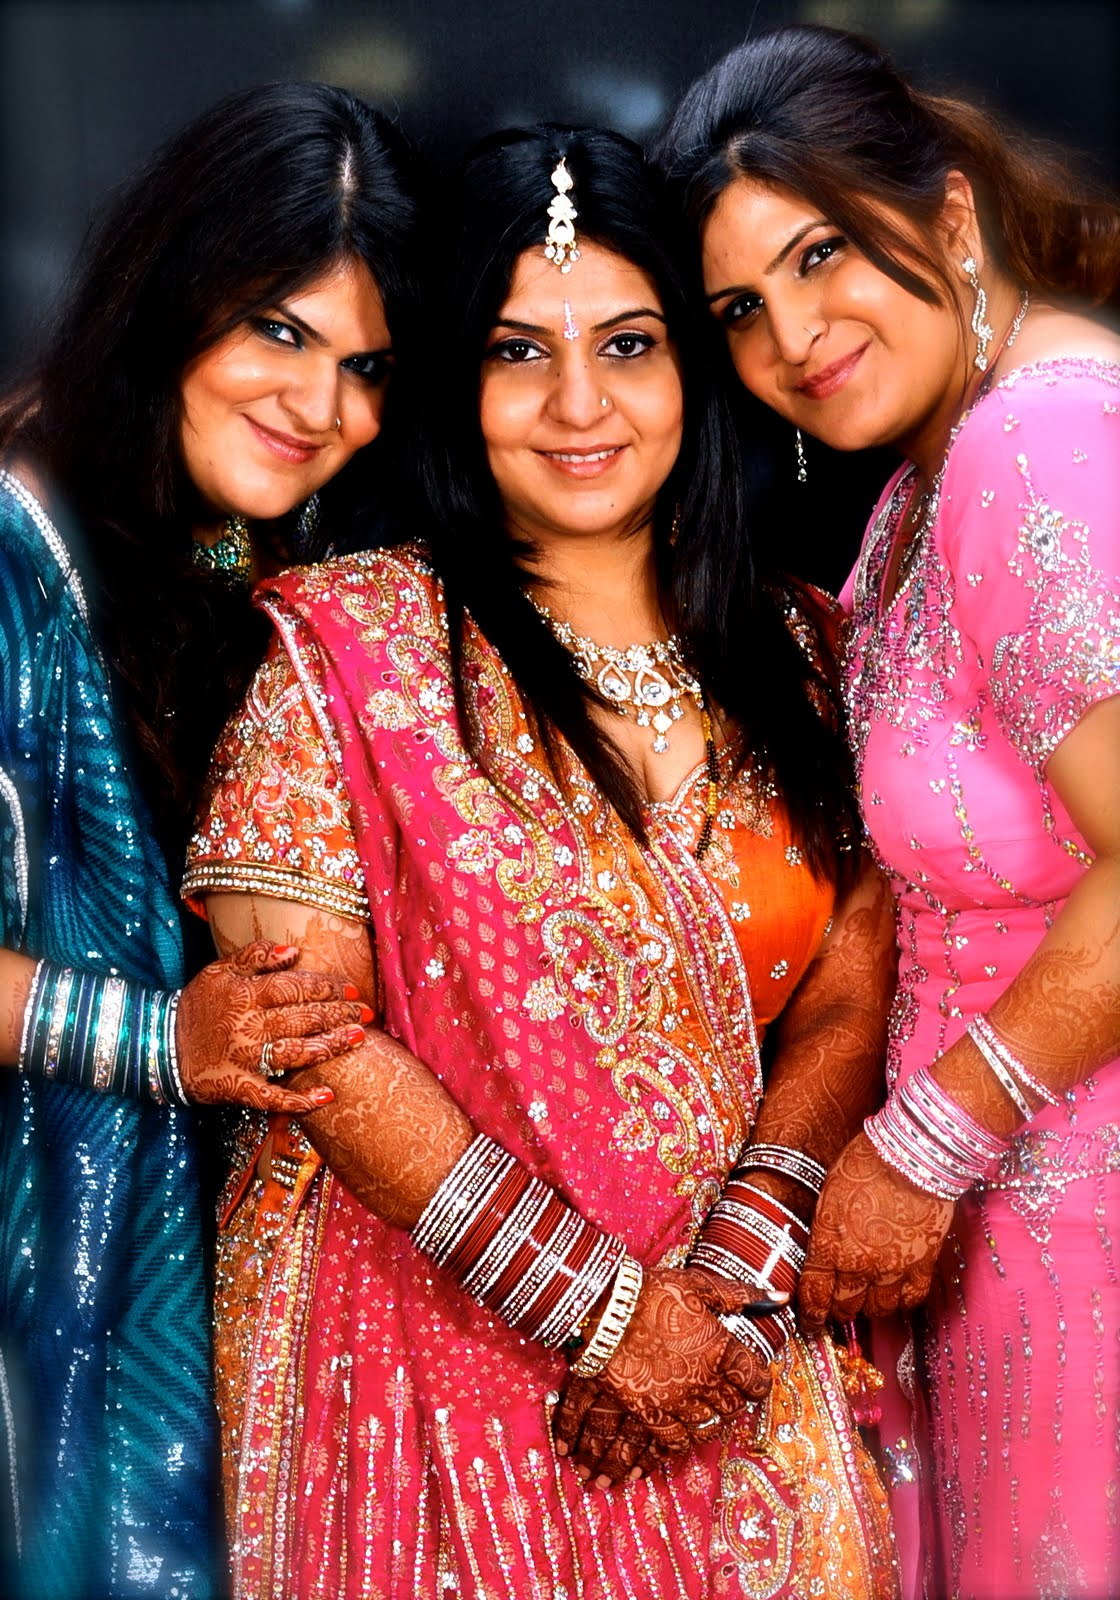 Beautiful muslim girls desi punjabi girls pictures - Punjabi desi pic ...